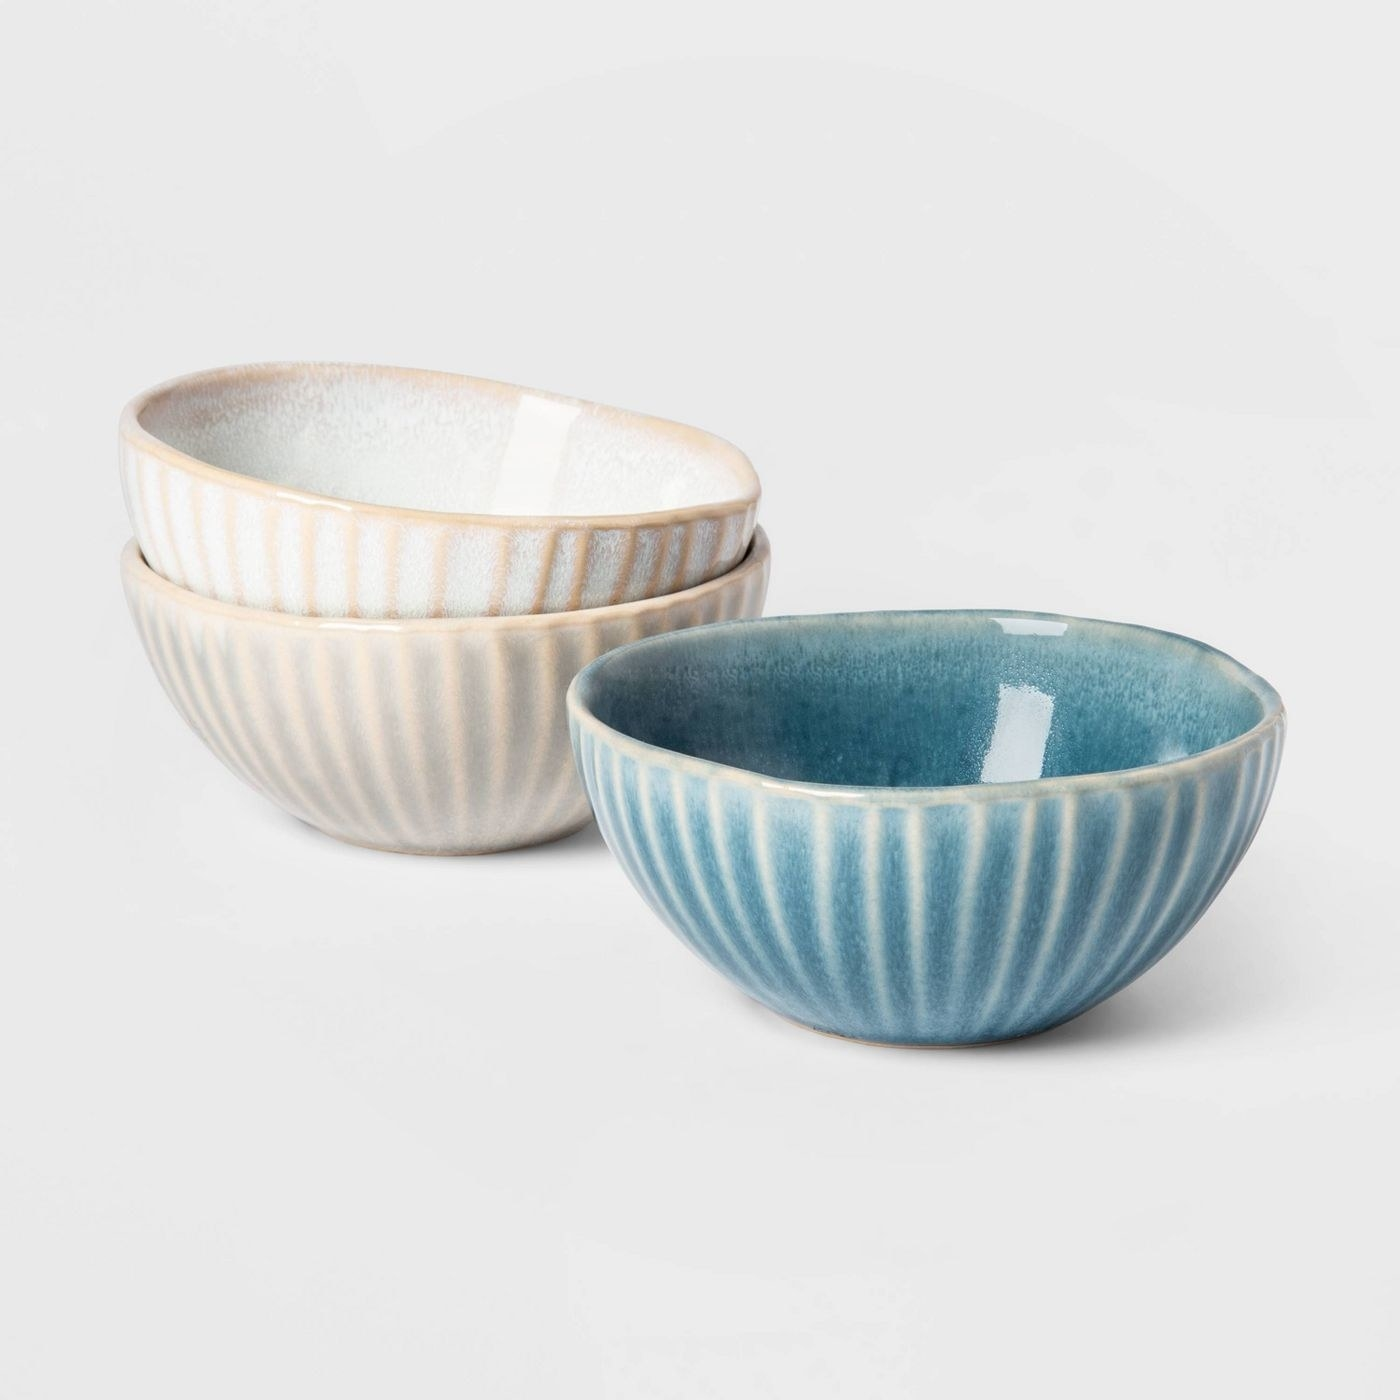 small condiment bowls with ridges around the edges and in white, grey, and blue